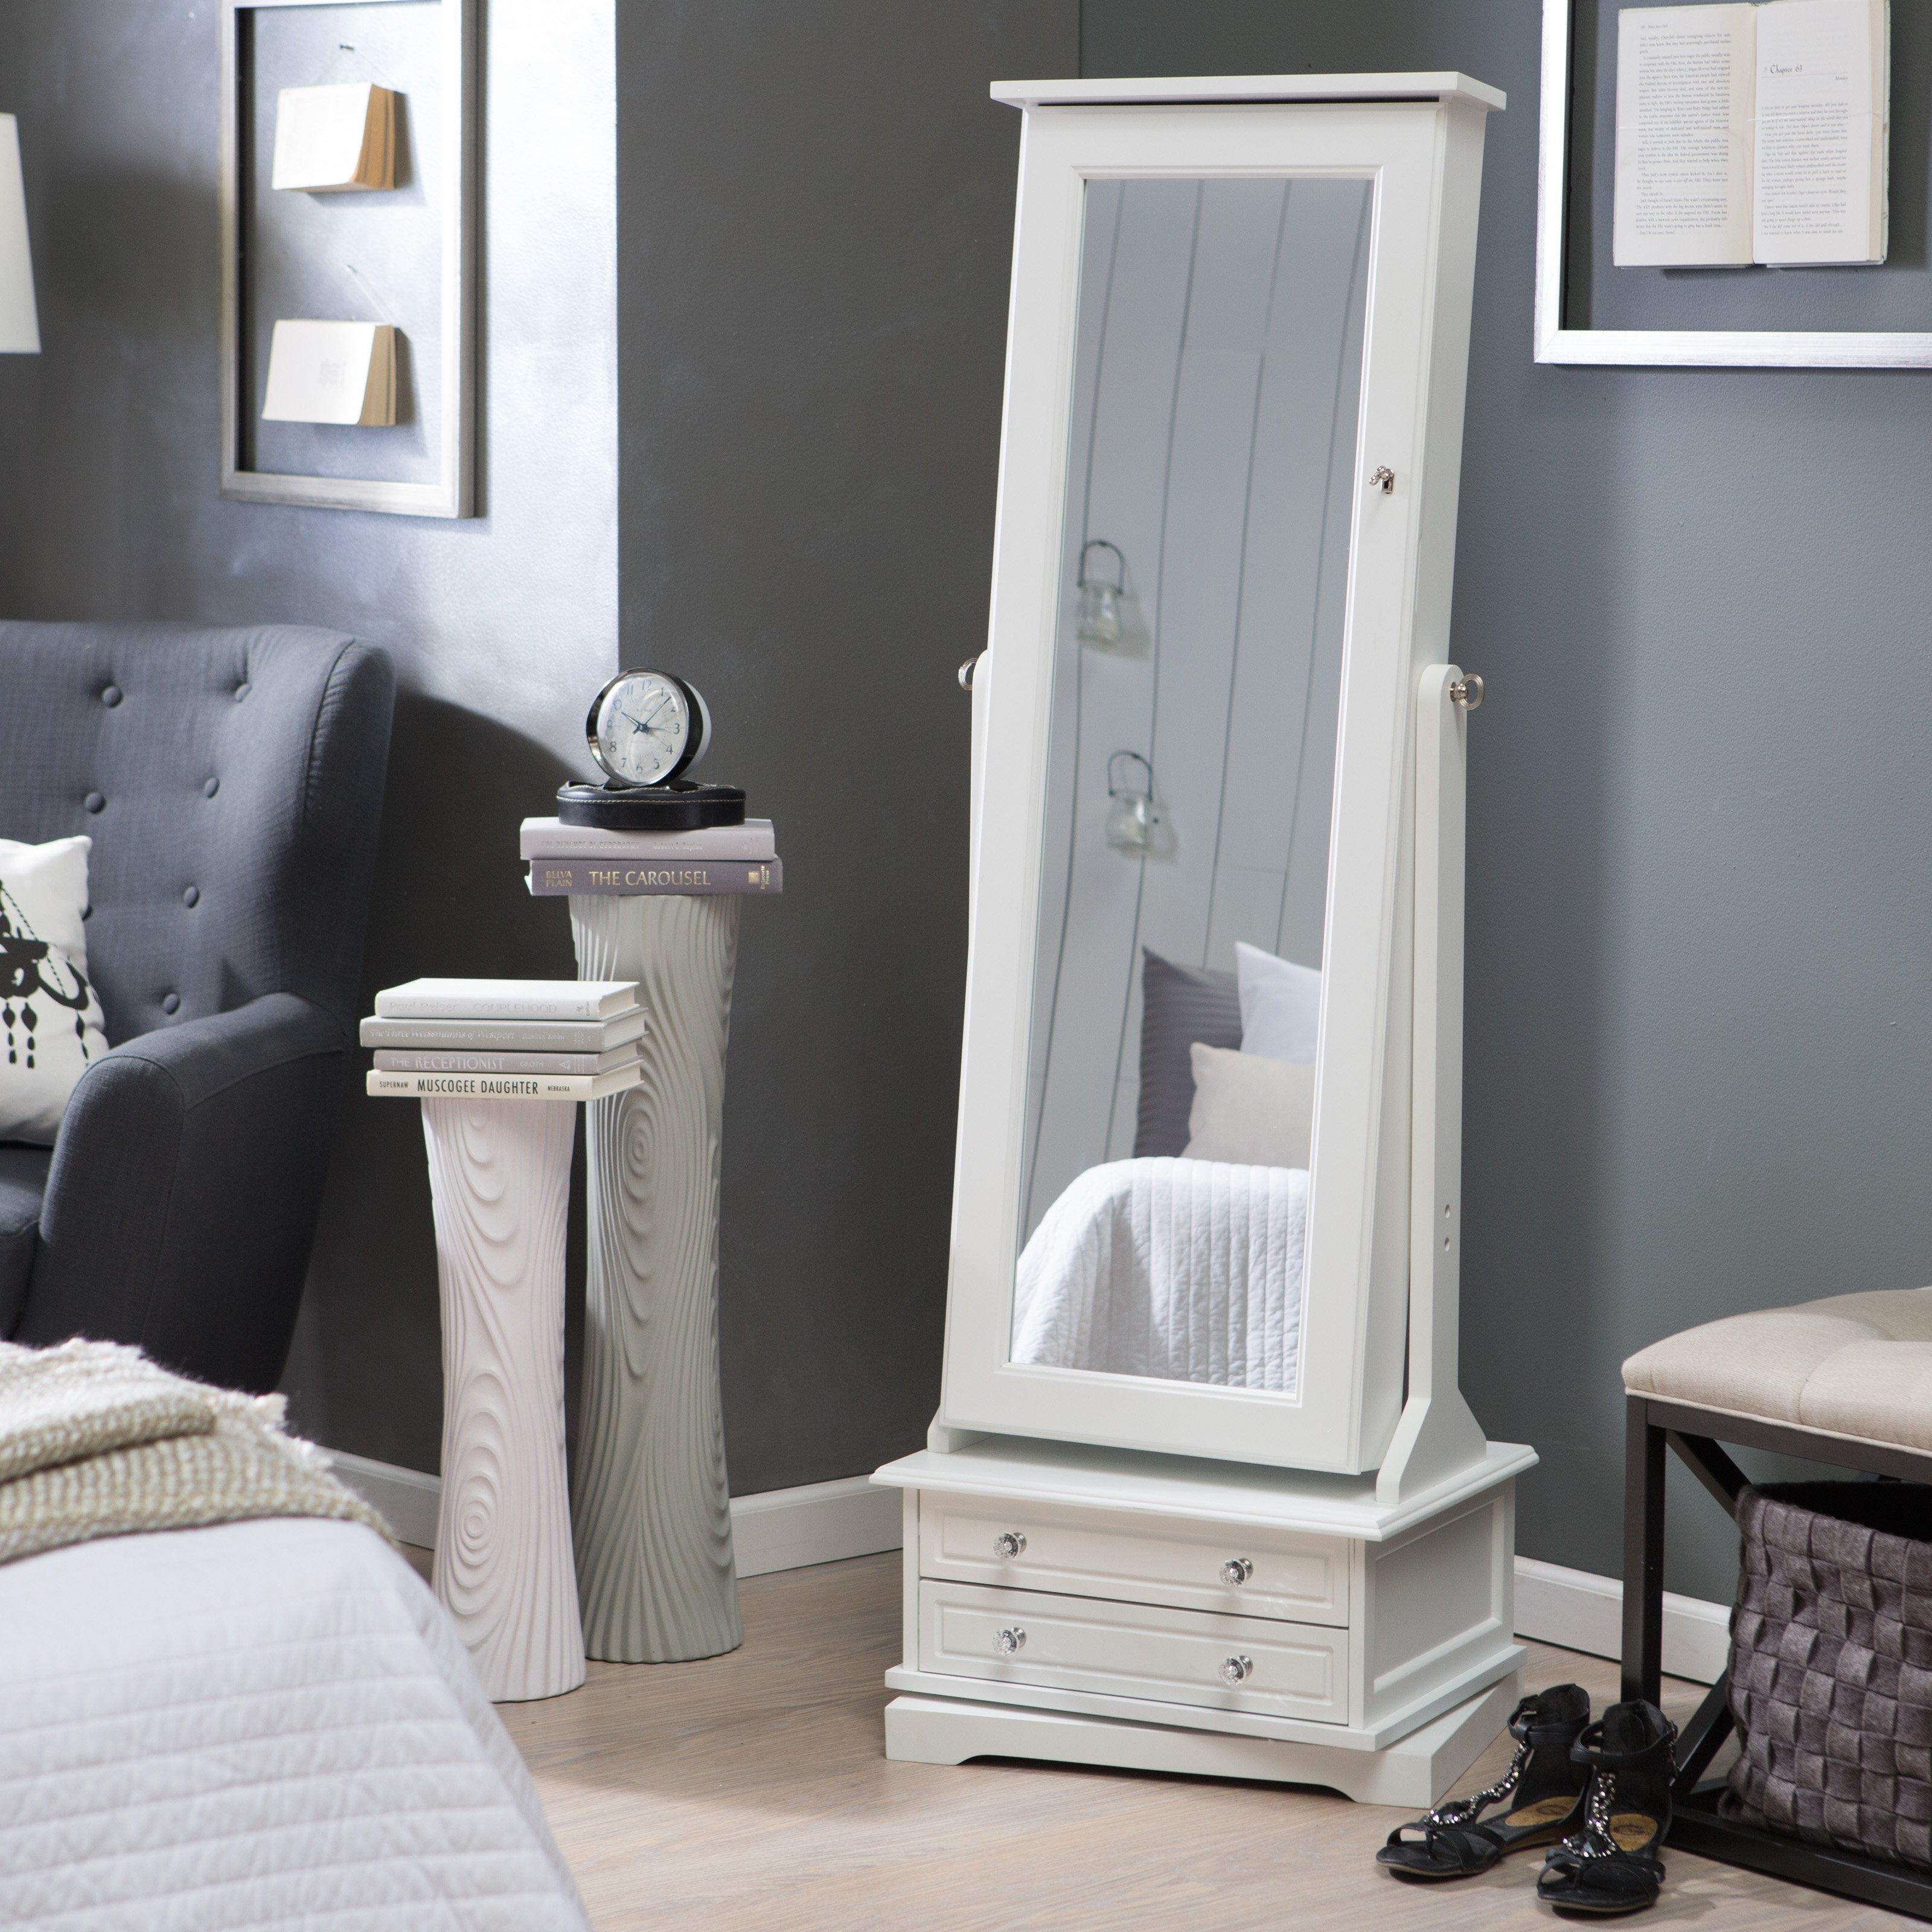 Bedroom Furniture Sets : Ceiling To Floor Large Decorative Mirrors In Silver Free Standing Mirror (Image 3 of 20)